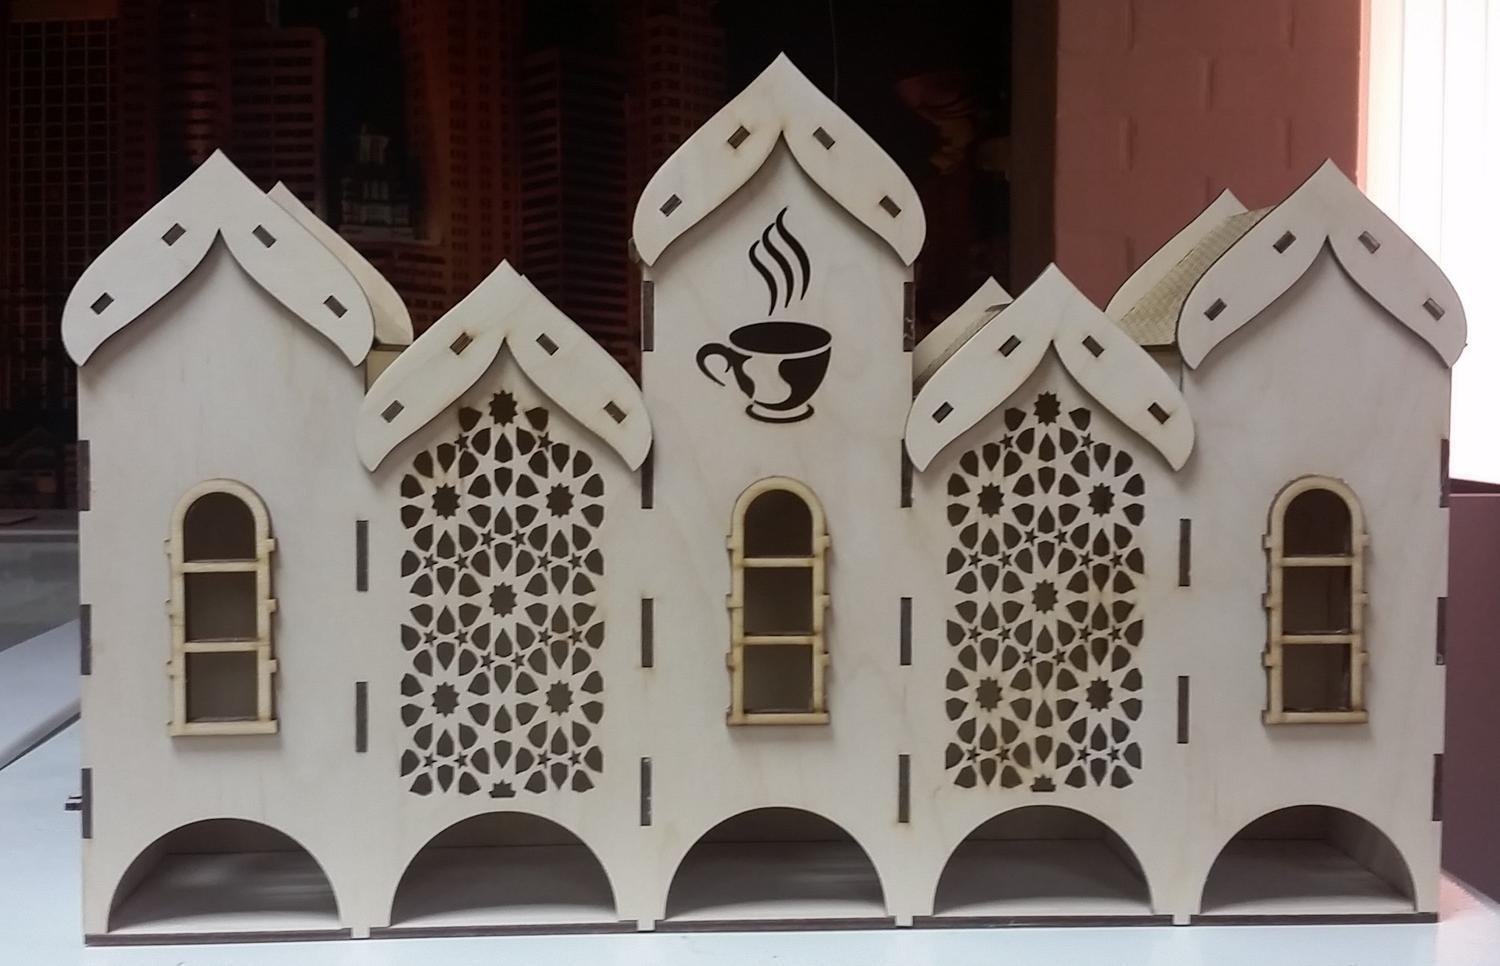 Laser Cut Plywood Tea House Tea Bags Holder With 5 Compartments Free DXF File